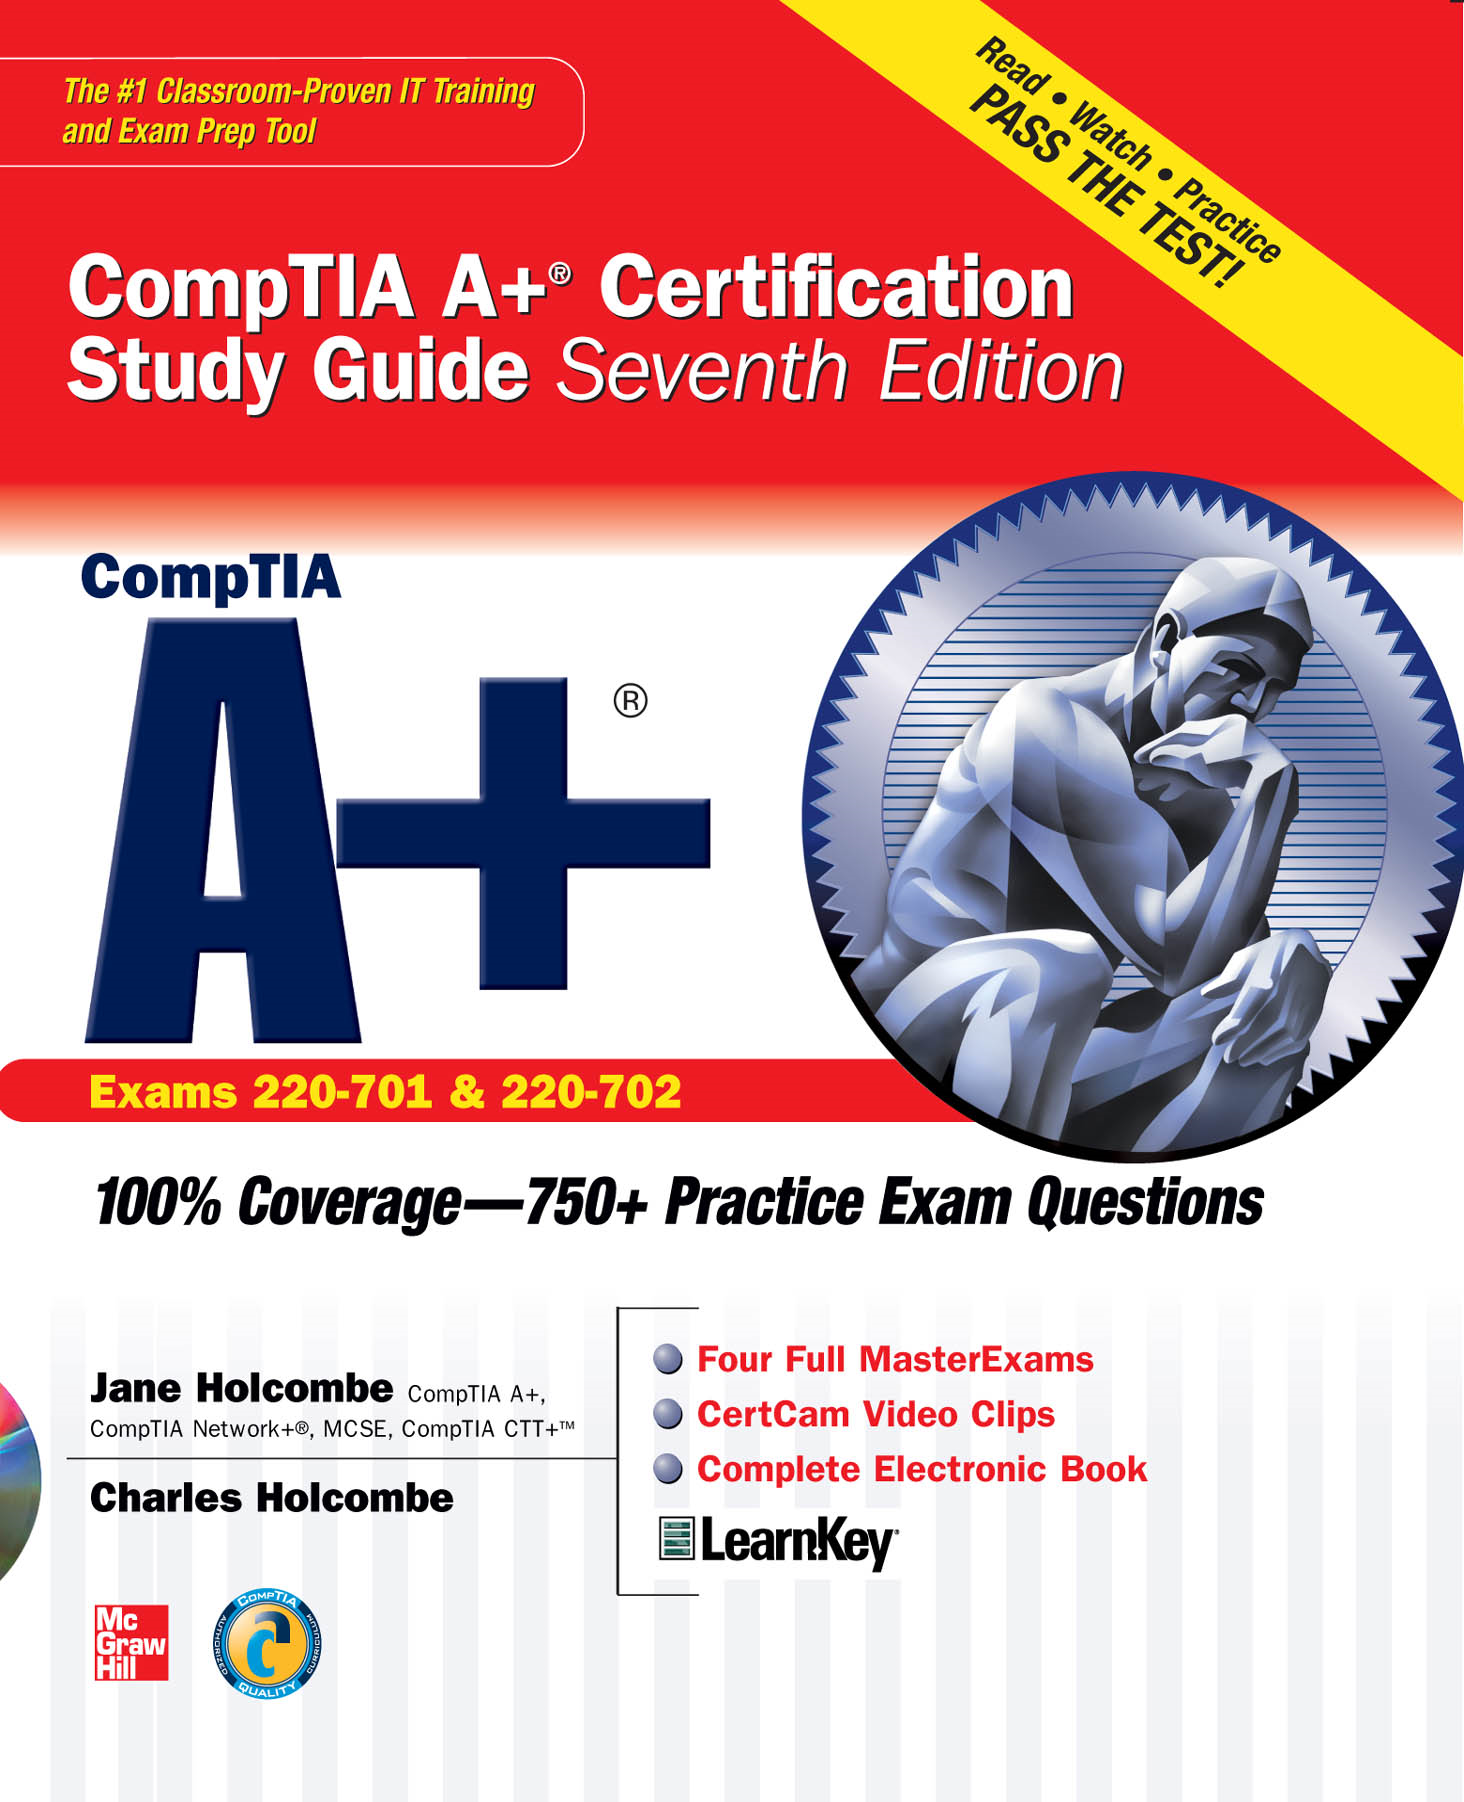 CompTIA A+ Certification Study Guide, Seventh Edition (Exam 220-701 & 220-702) By:  Charles Holcombe,Jane Holcombe